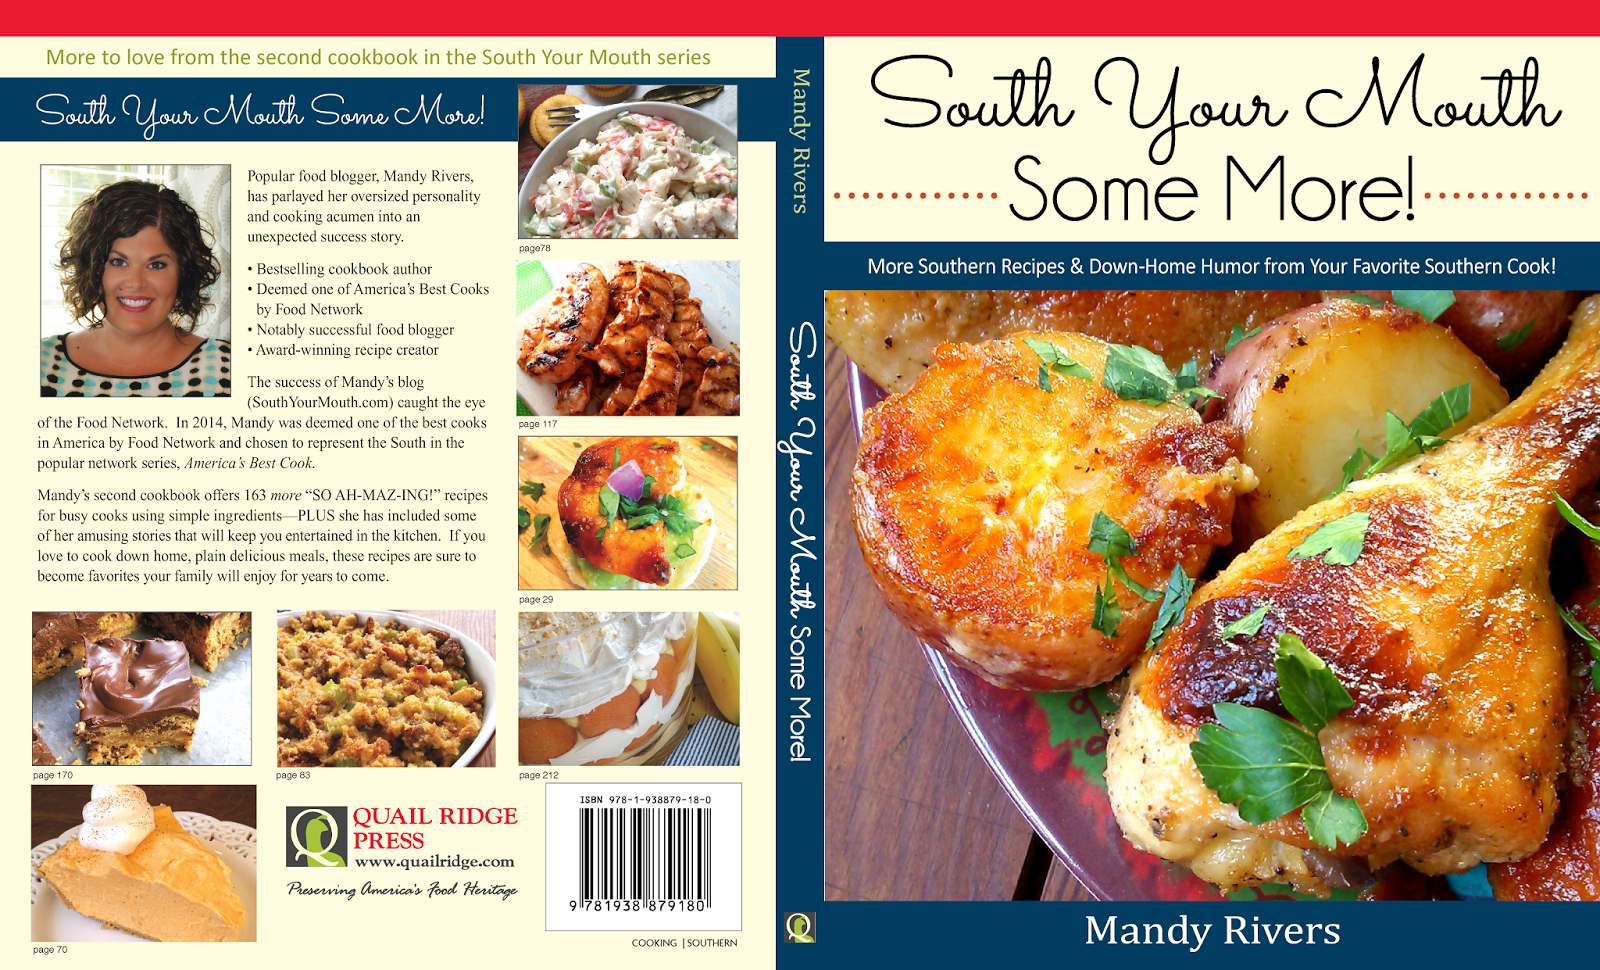 South your mouth get the new cookbook whats in it and why i love get the latest cookbook from mandy rivers in the south your mouth series south forumfinder Images